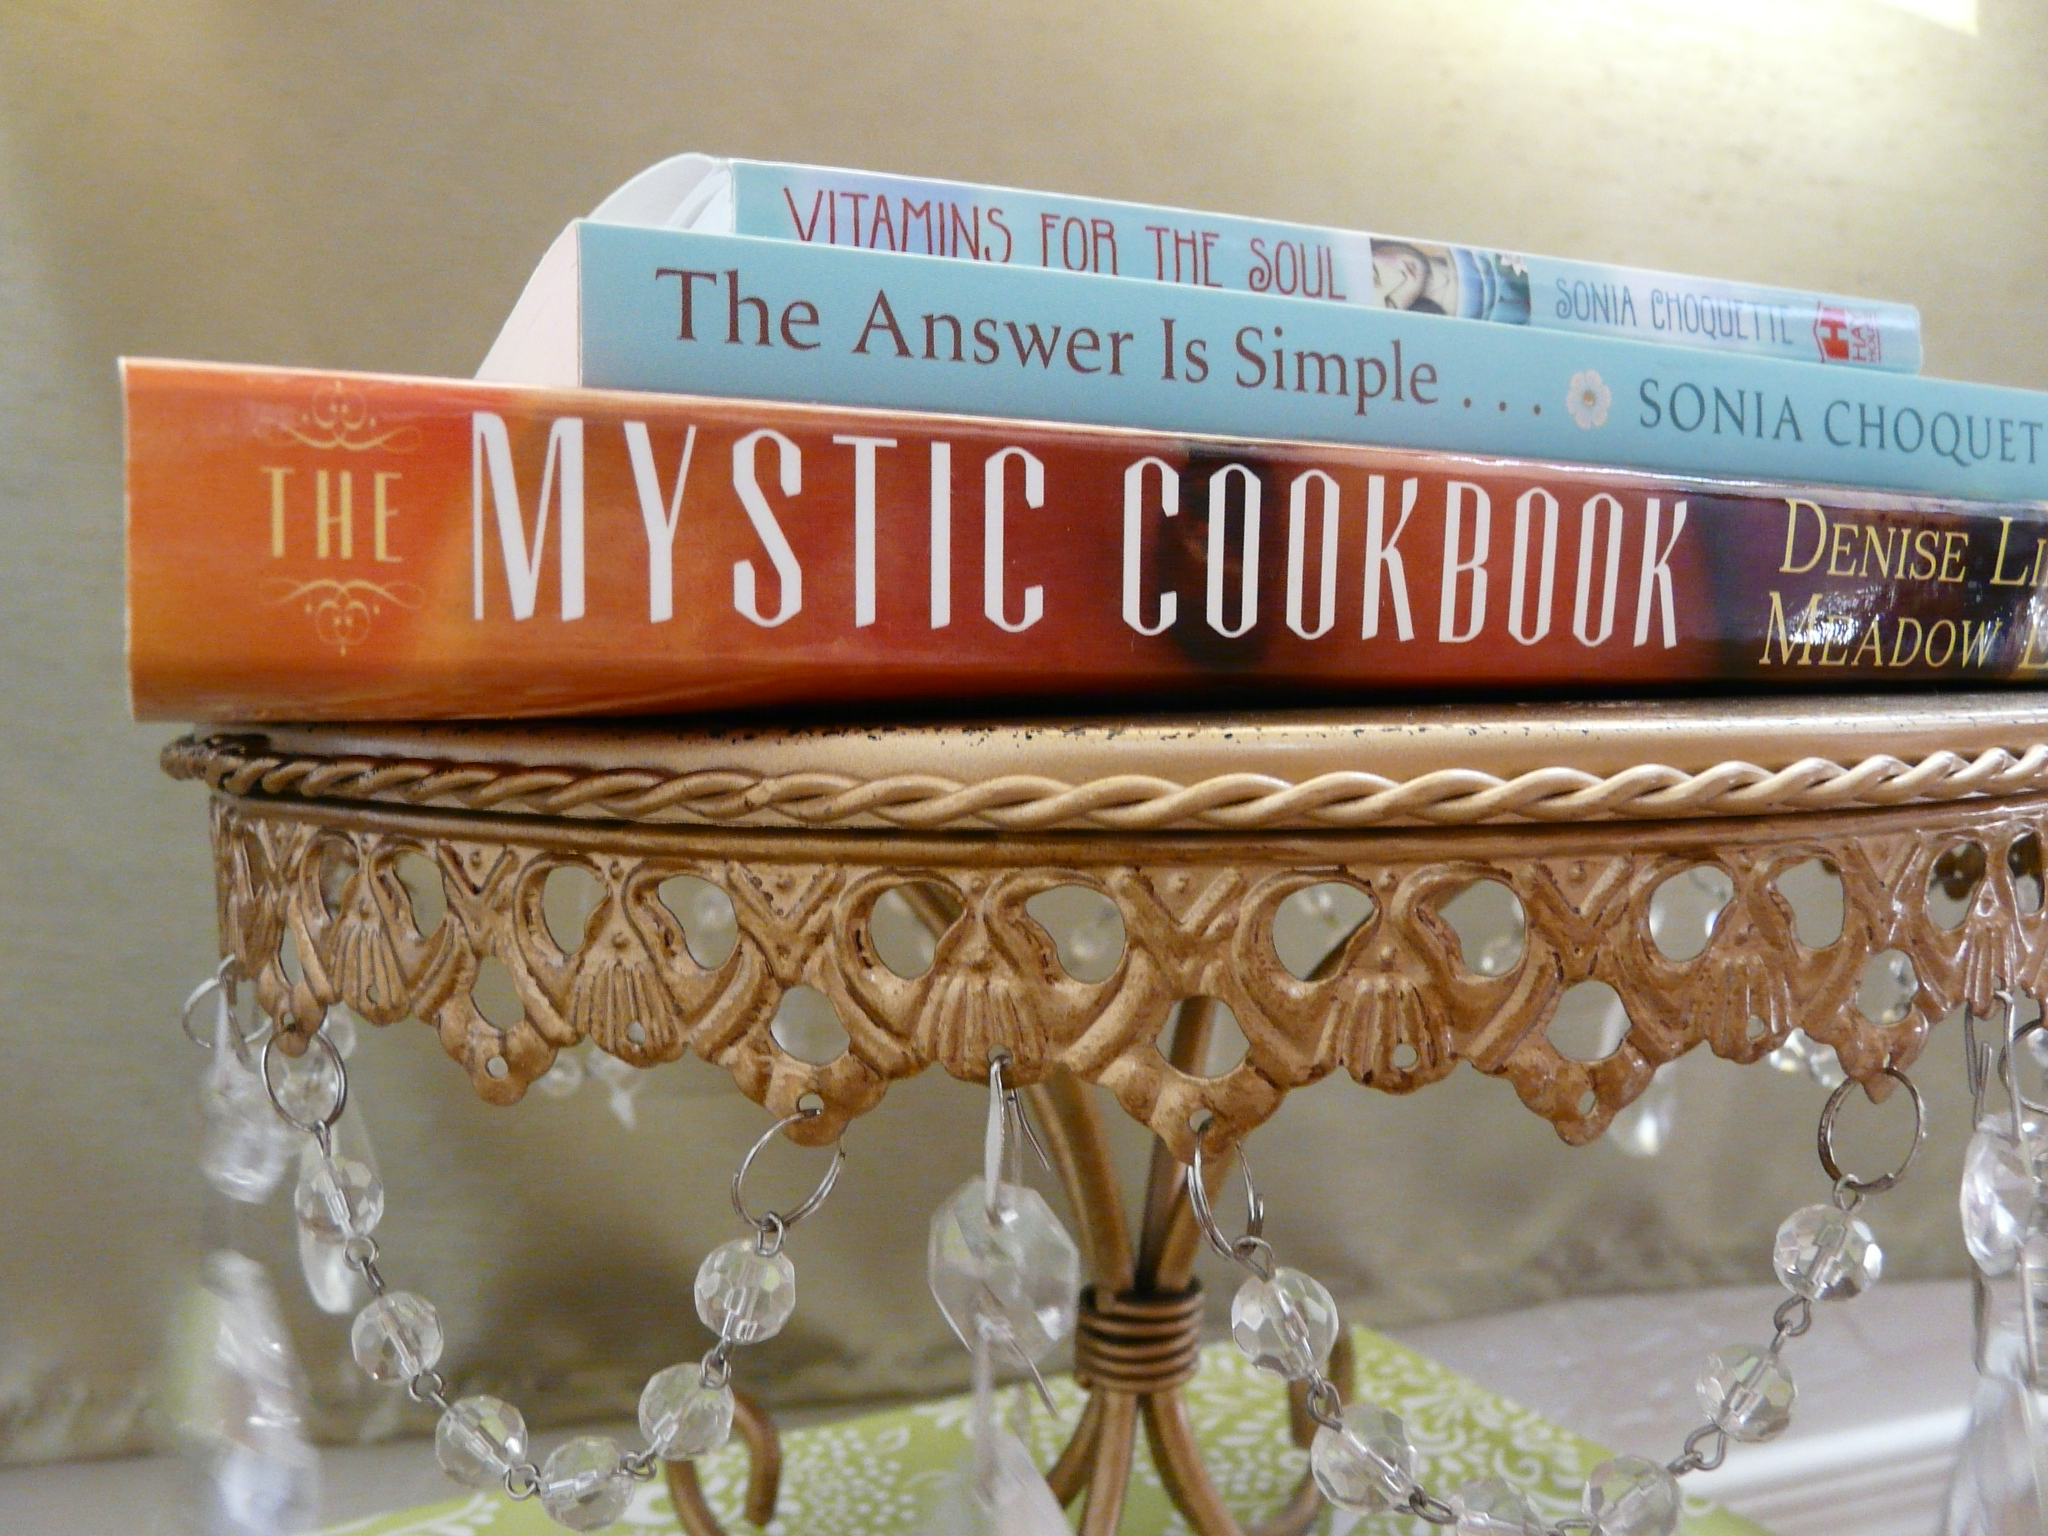 Photo of the Mystic Cookbook by Meadow Linn and Denise Linn, The Answer is Simple by Sonia Choquette and Vitamins for The Soul by Sonia Choquette for a Love and Treasure blog post on The Most Loving People Of Our Time Written by Haydee Montemayor